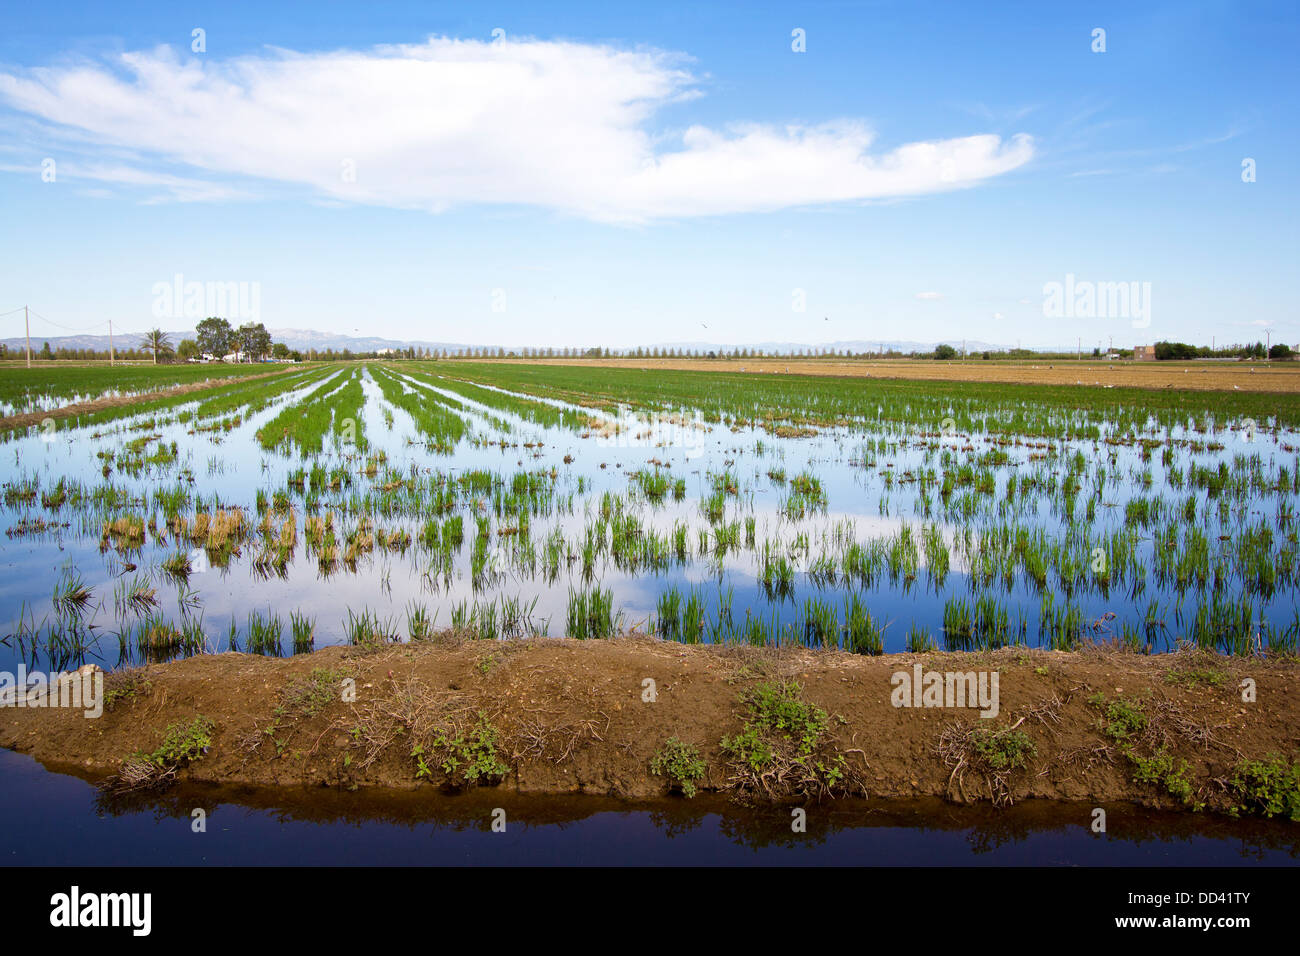 Fields with small water filled ditches and canals, with rice growing in Delta de l'Ebre, Tarragona, Catalonia (Spain) Stock Photo